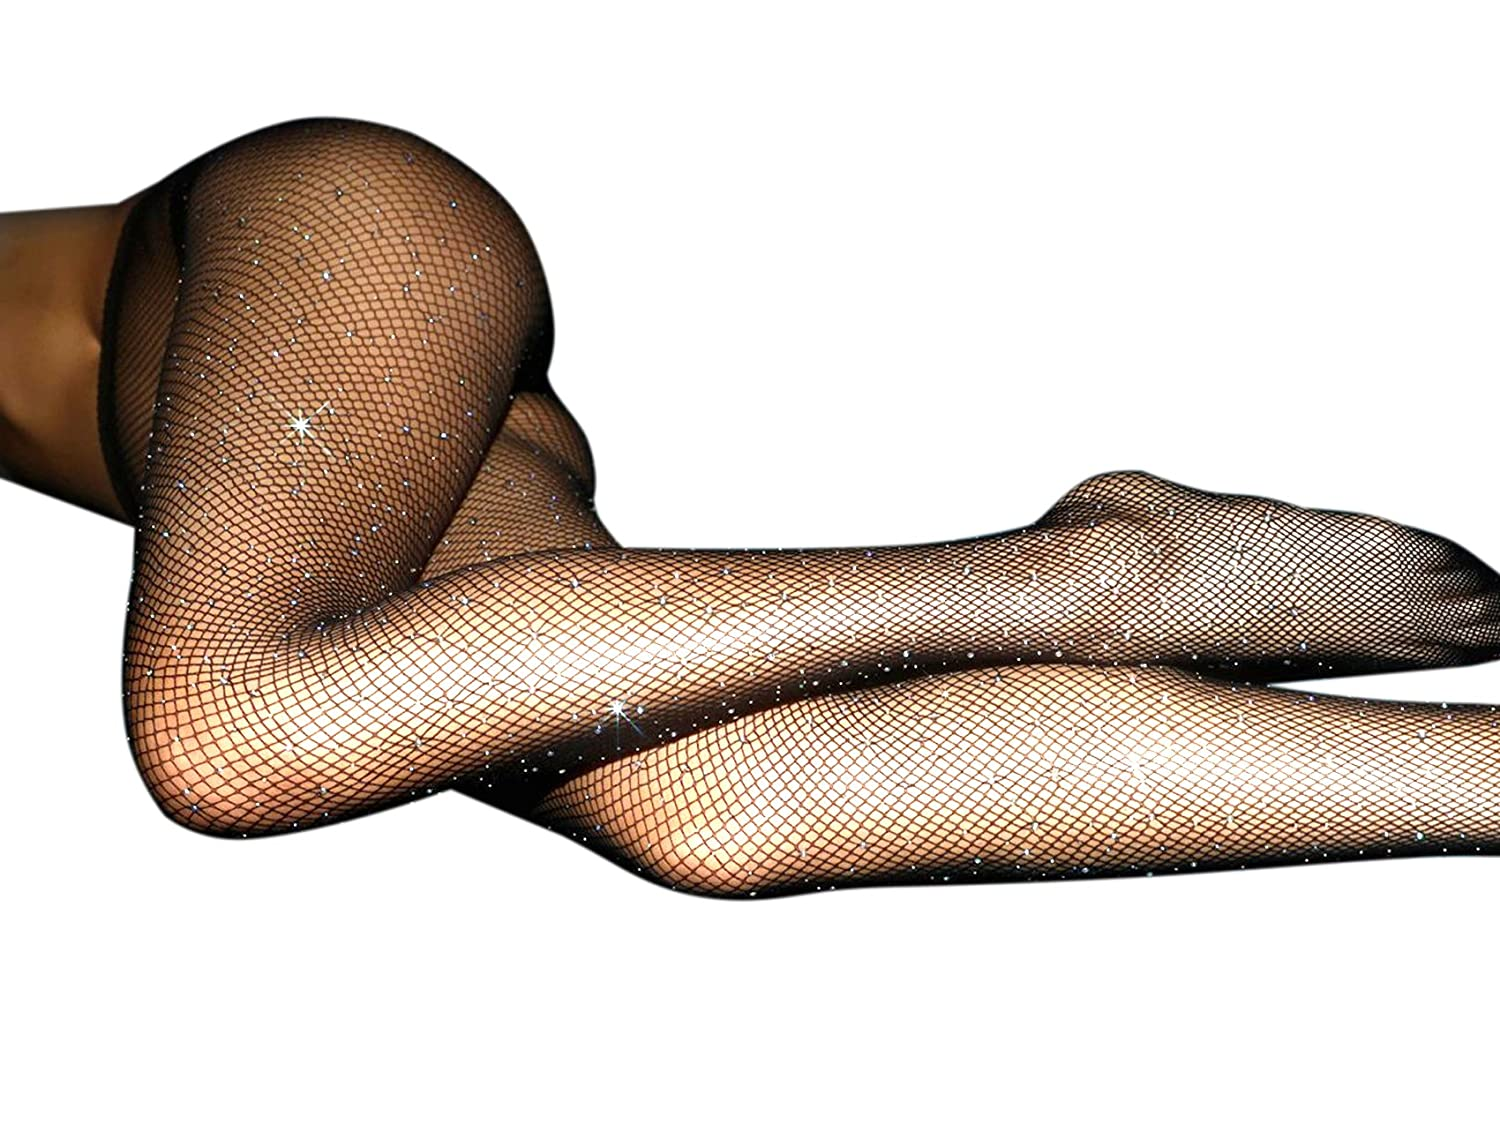 42e4f63cfa7 SEXY DESIGN - Pantyhose designed with sexy mesh¡Sparkle Rhinestone and high  rise